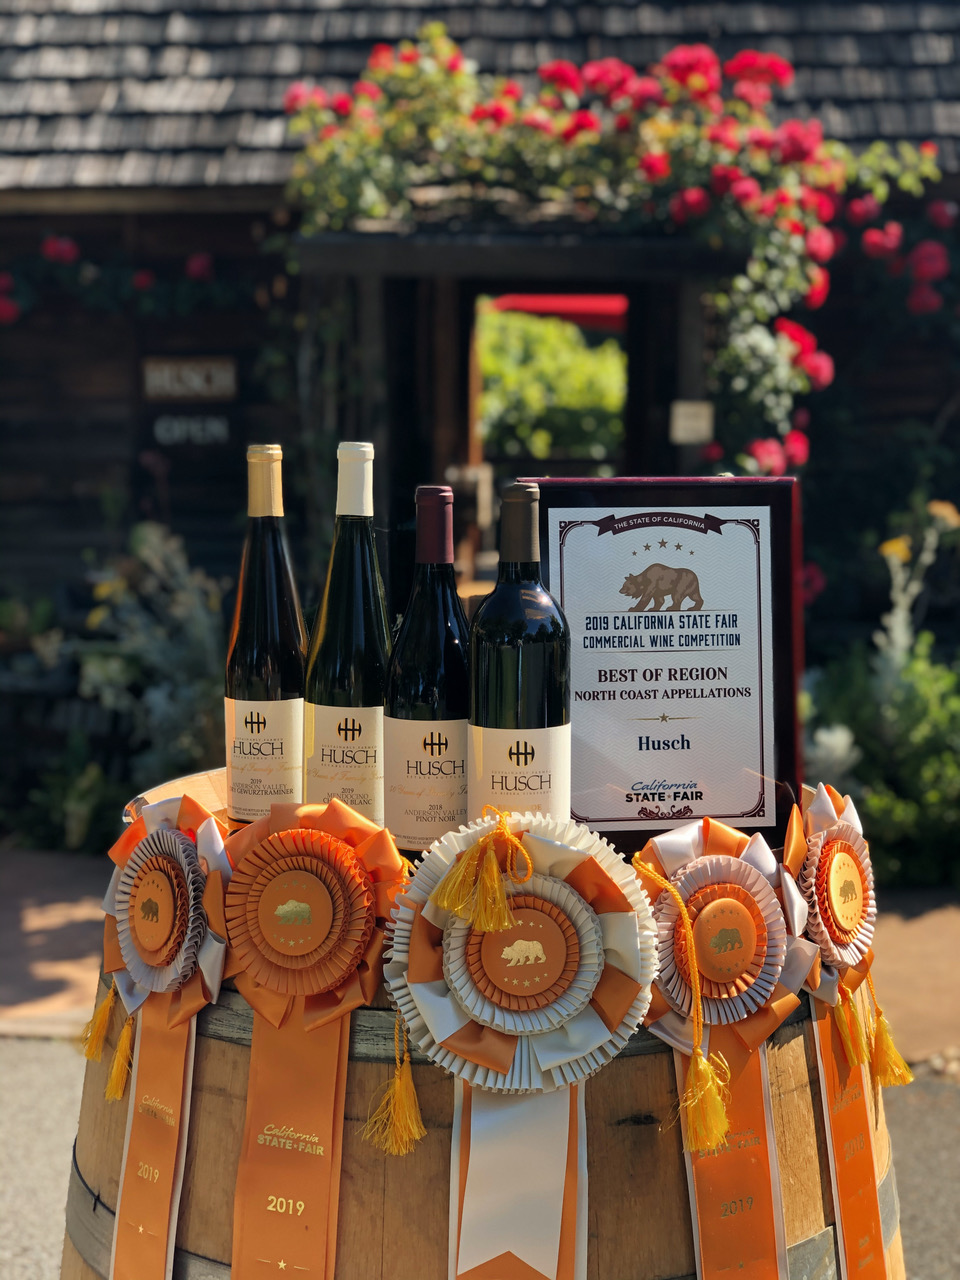 Wine bottles on a wood barrel with award ribbons hanging on the side